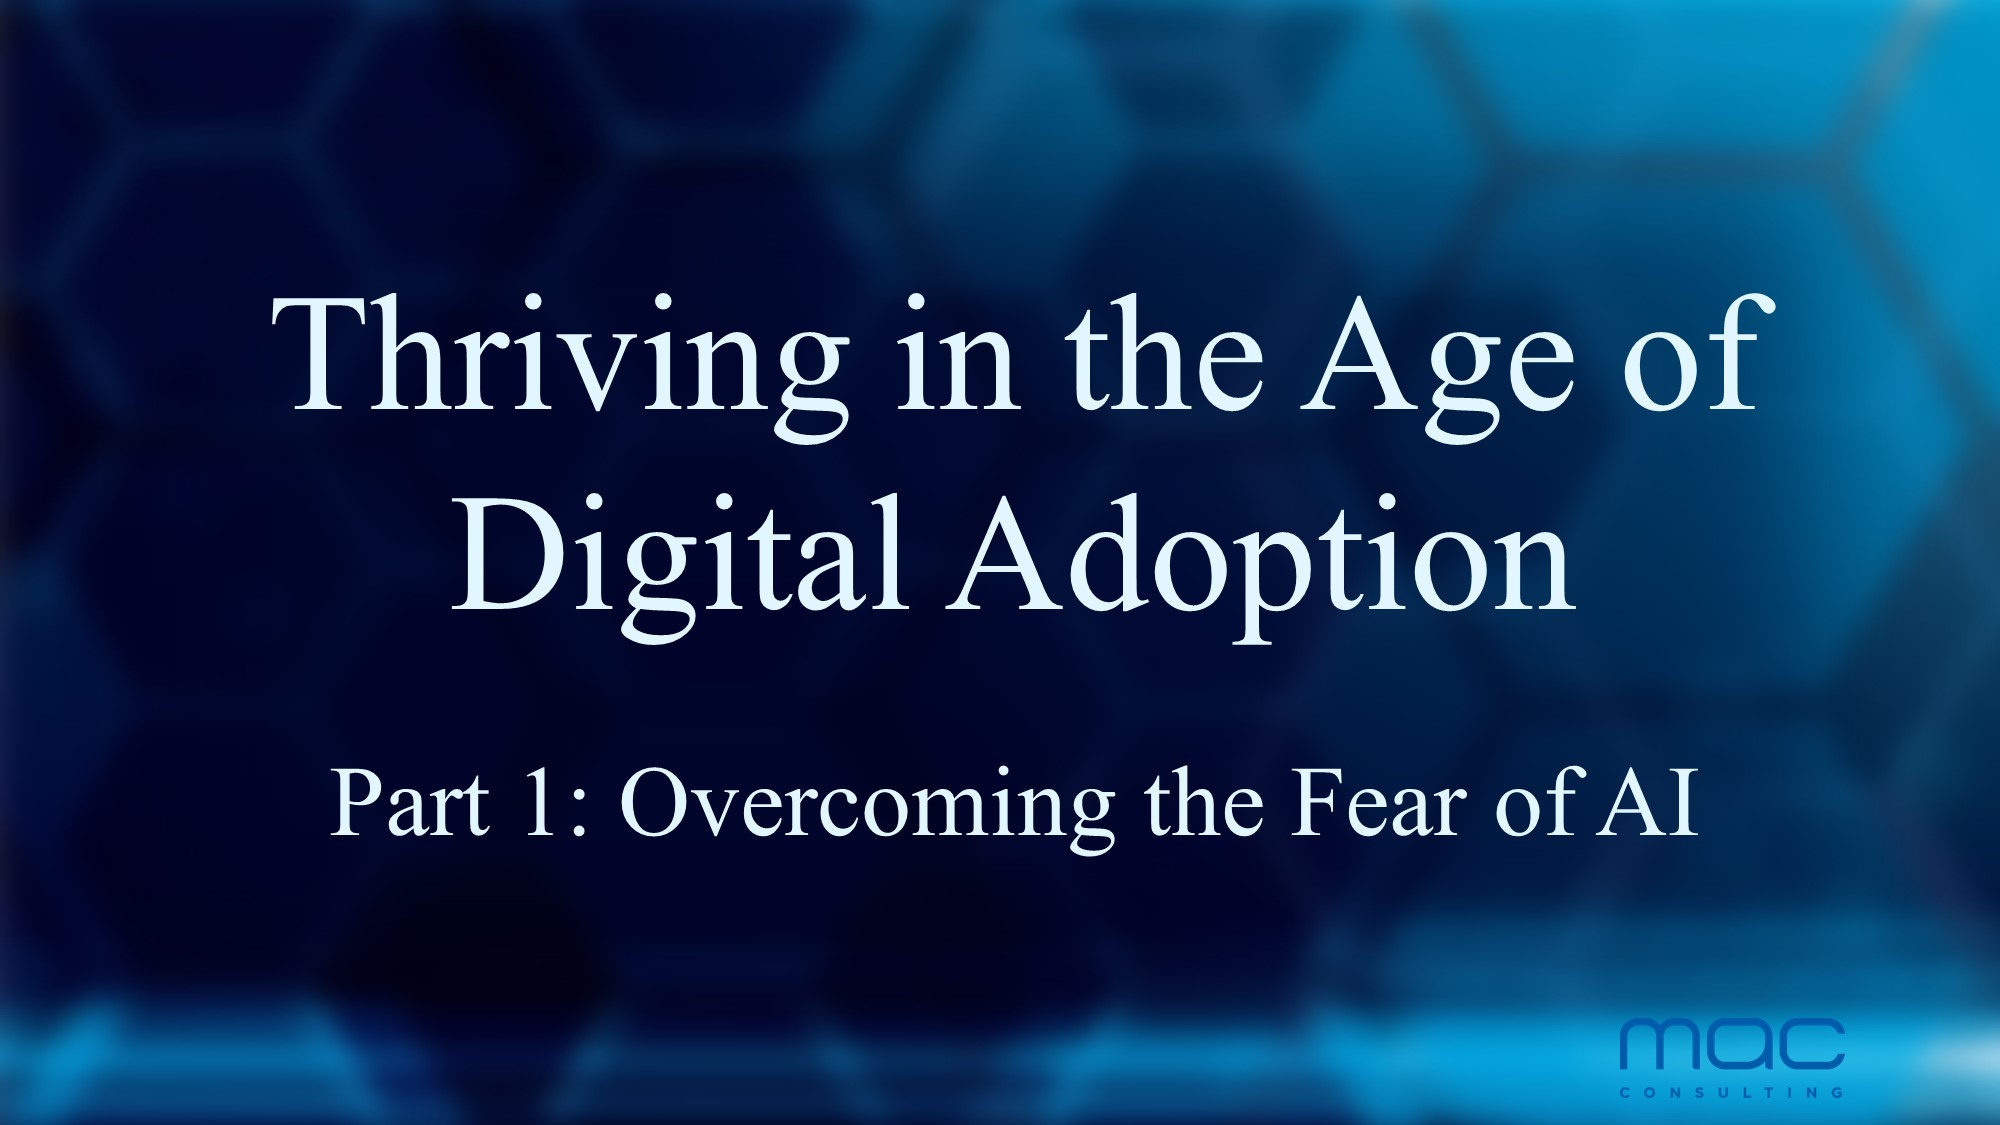 Thriving in the Age of Digital Adoption